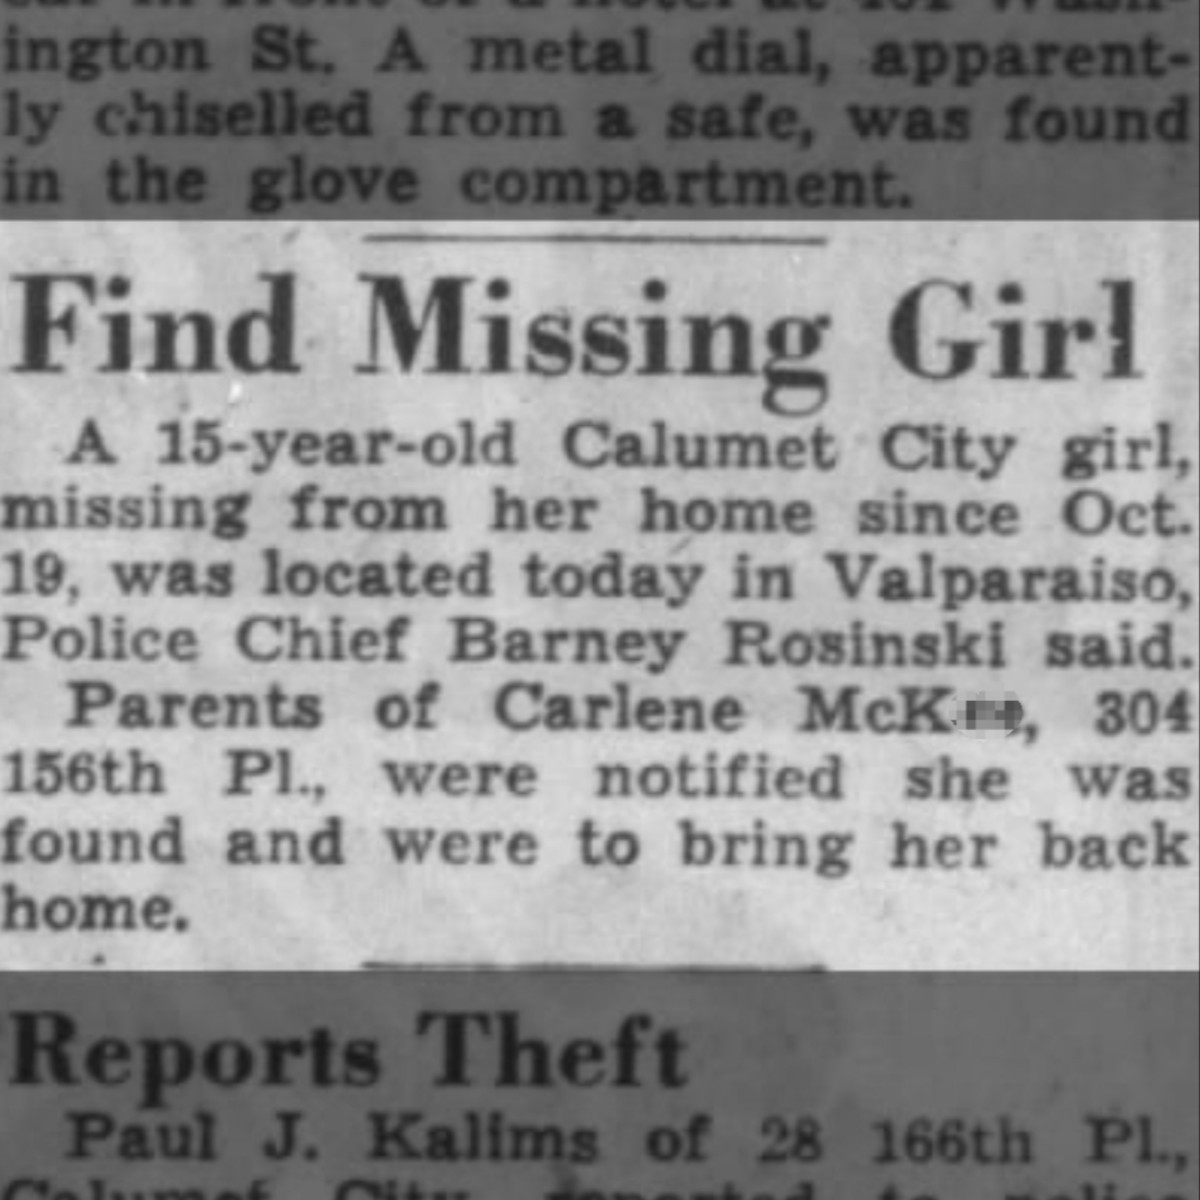 Missing Girl Announcement